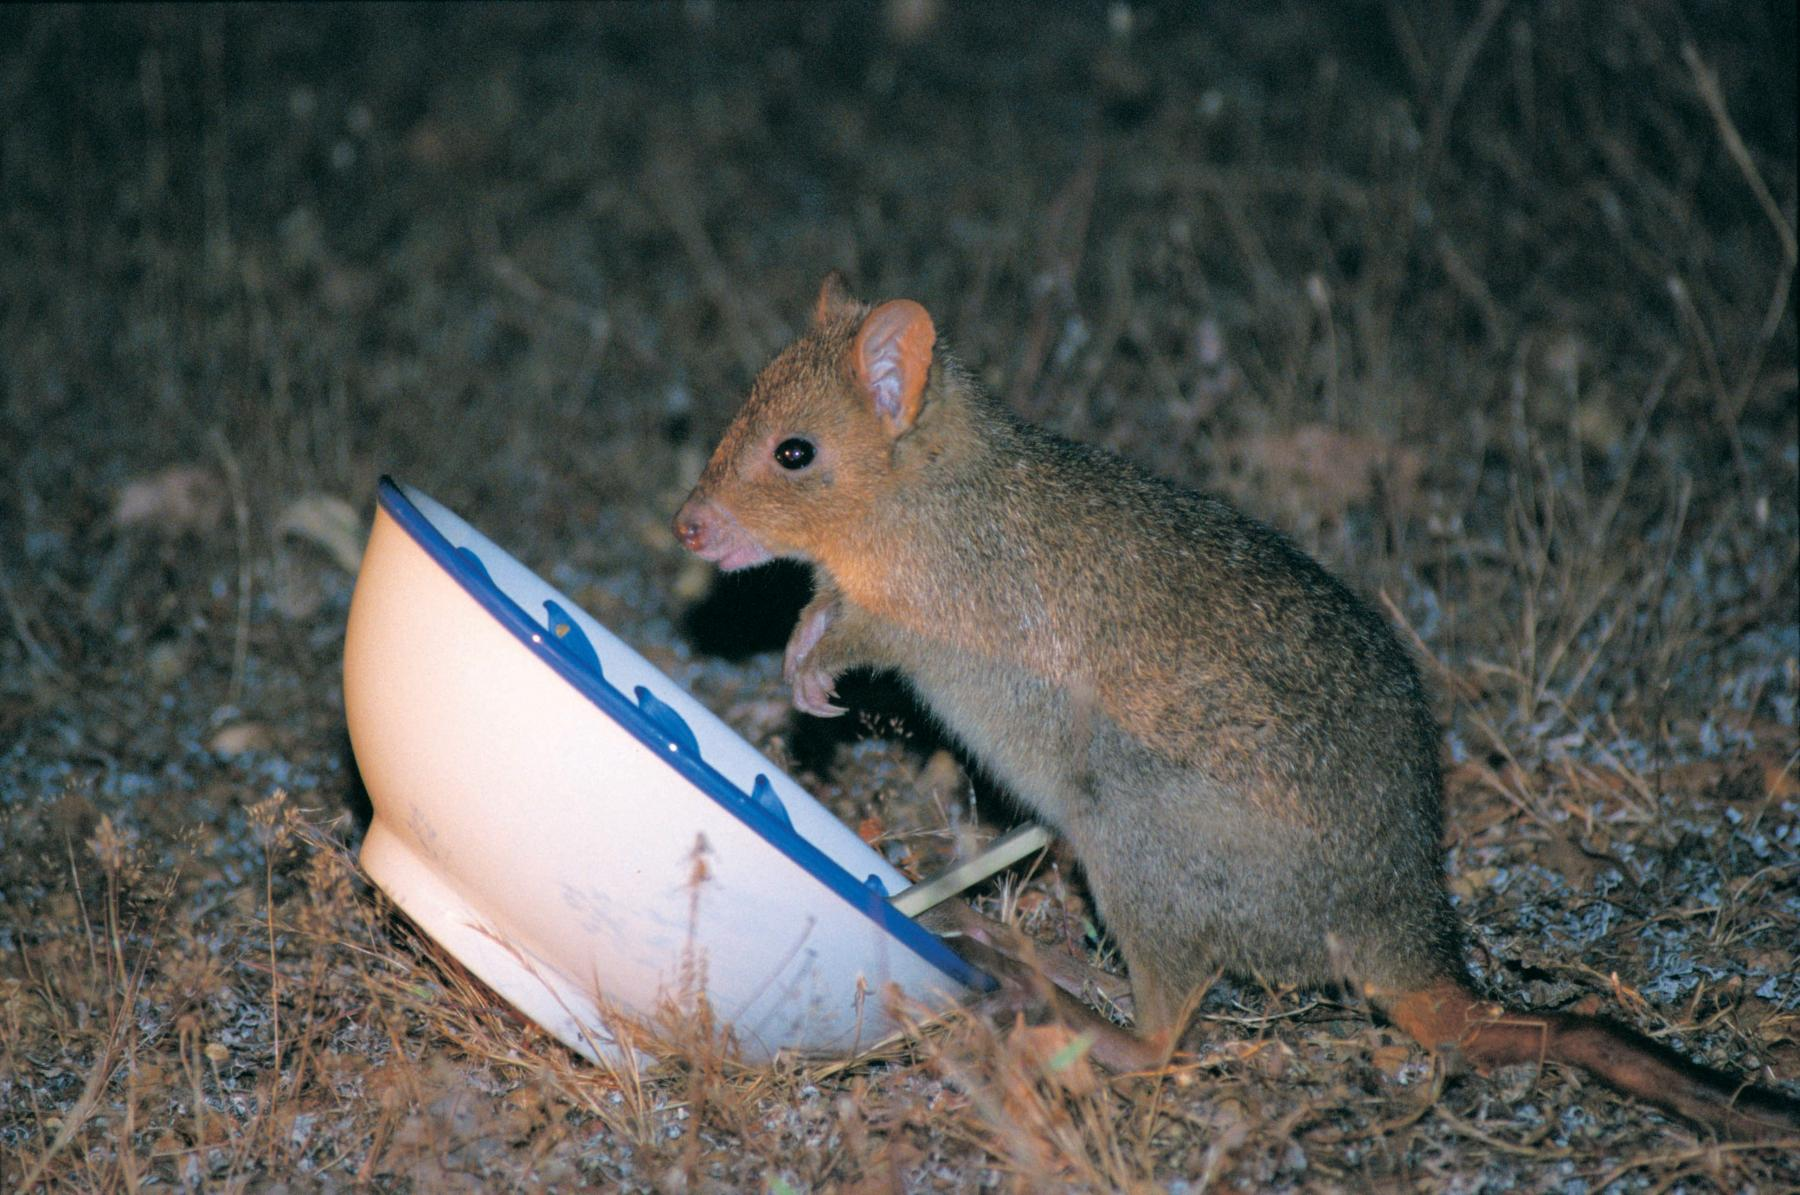 Woylie or Brush-tailed Bettong